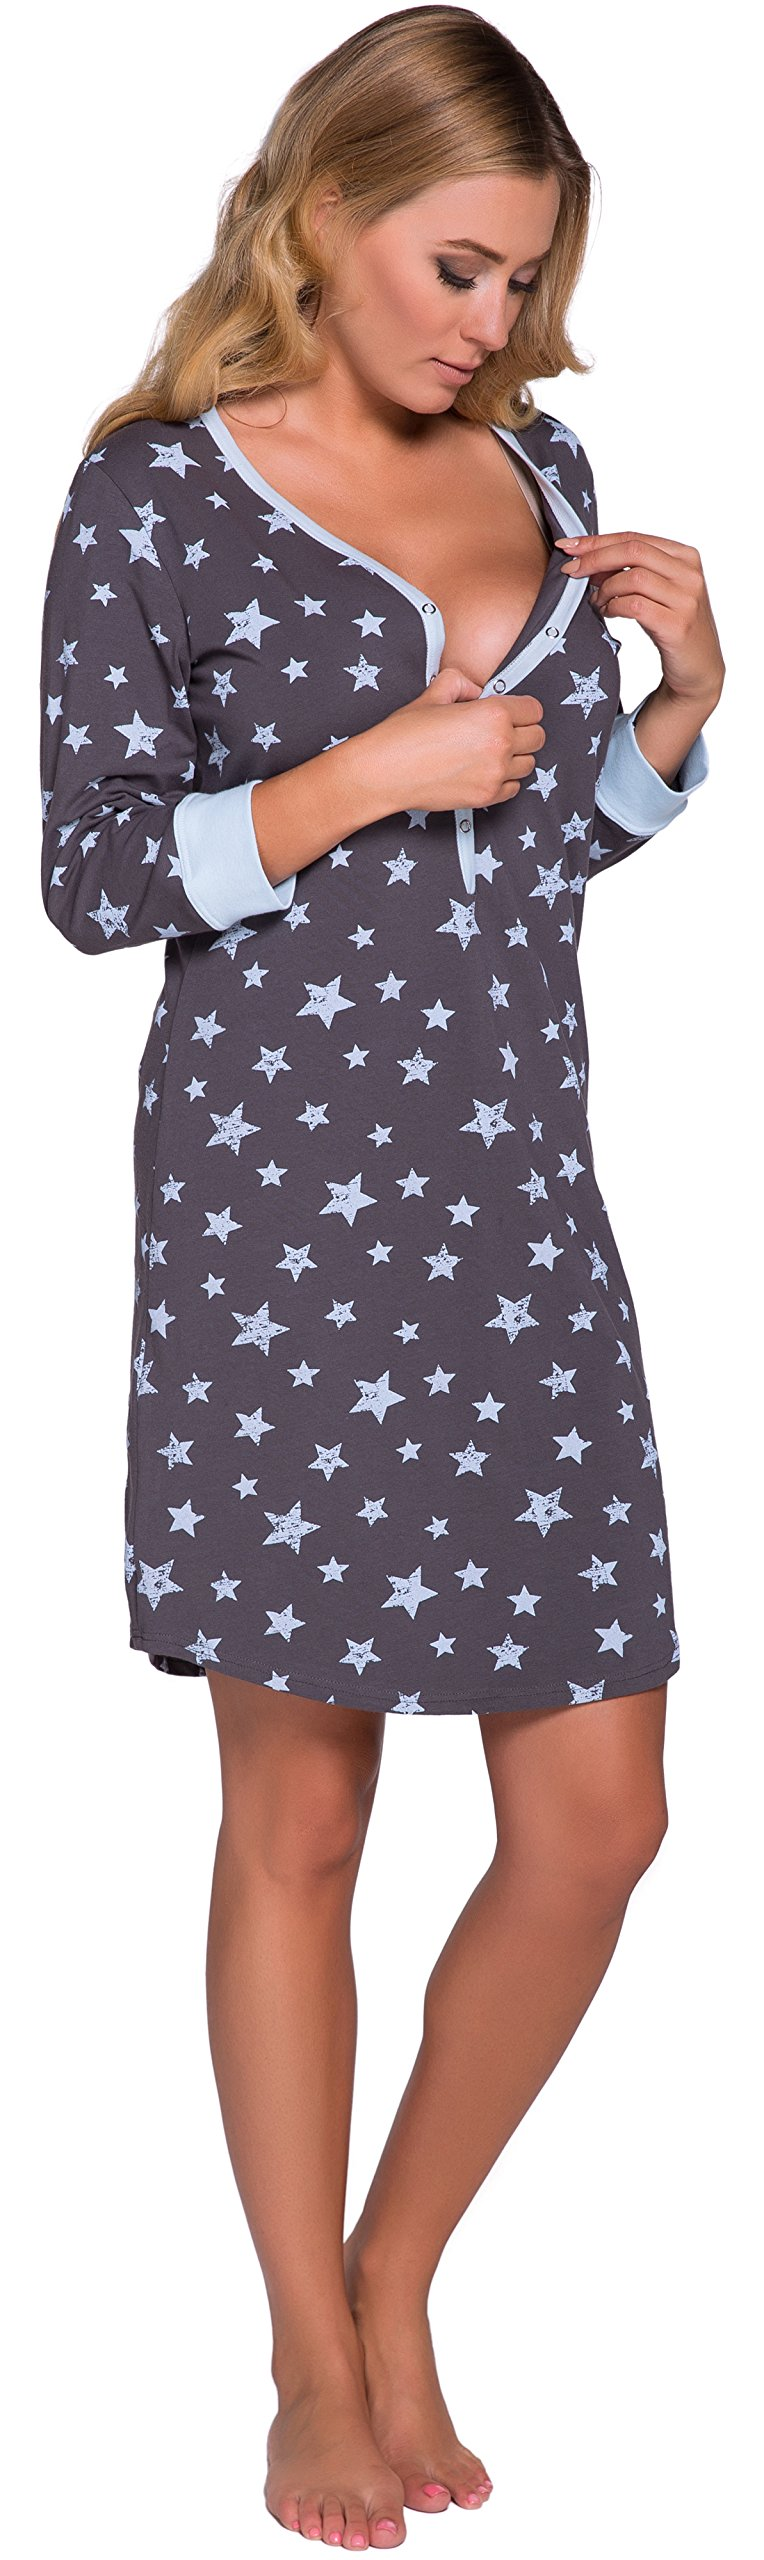 Italian Fashion IF Mujer Camisones Comet 0111 product image